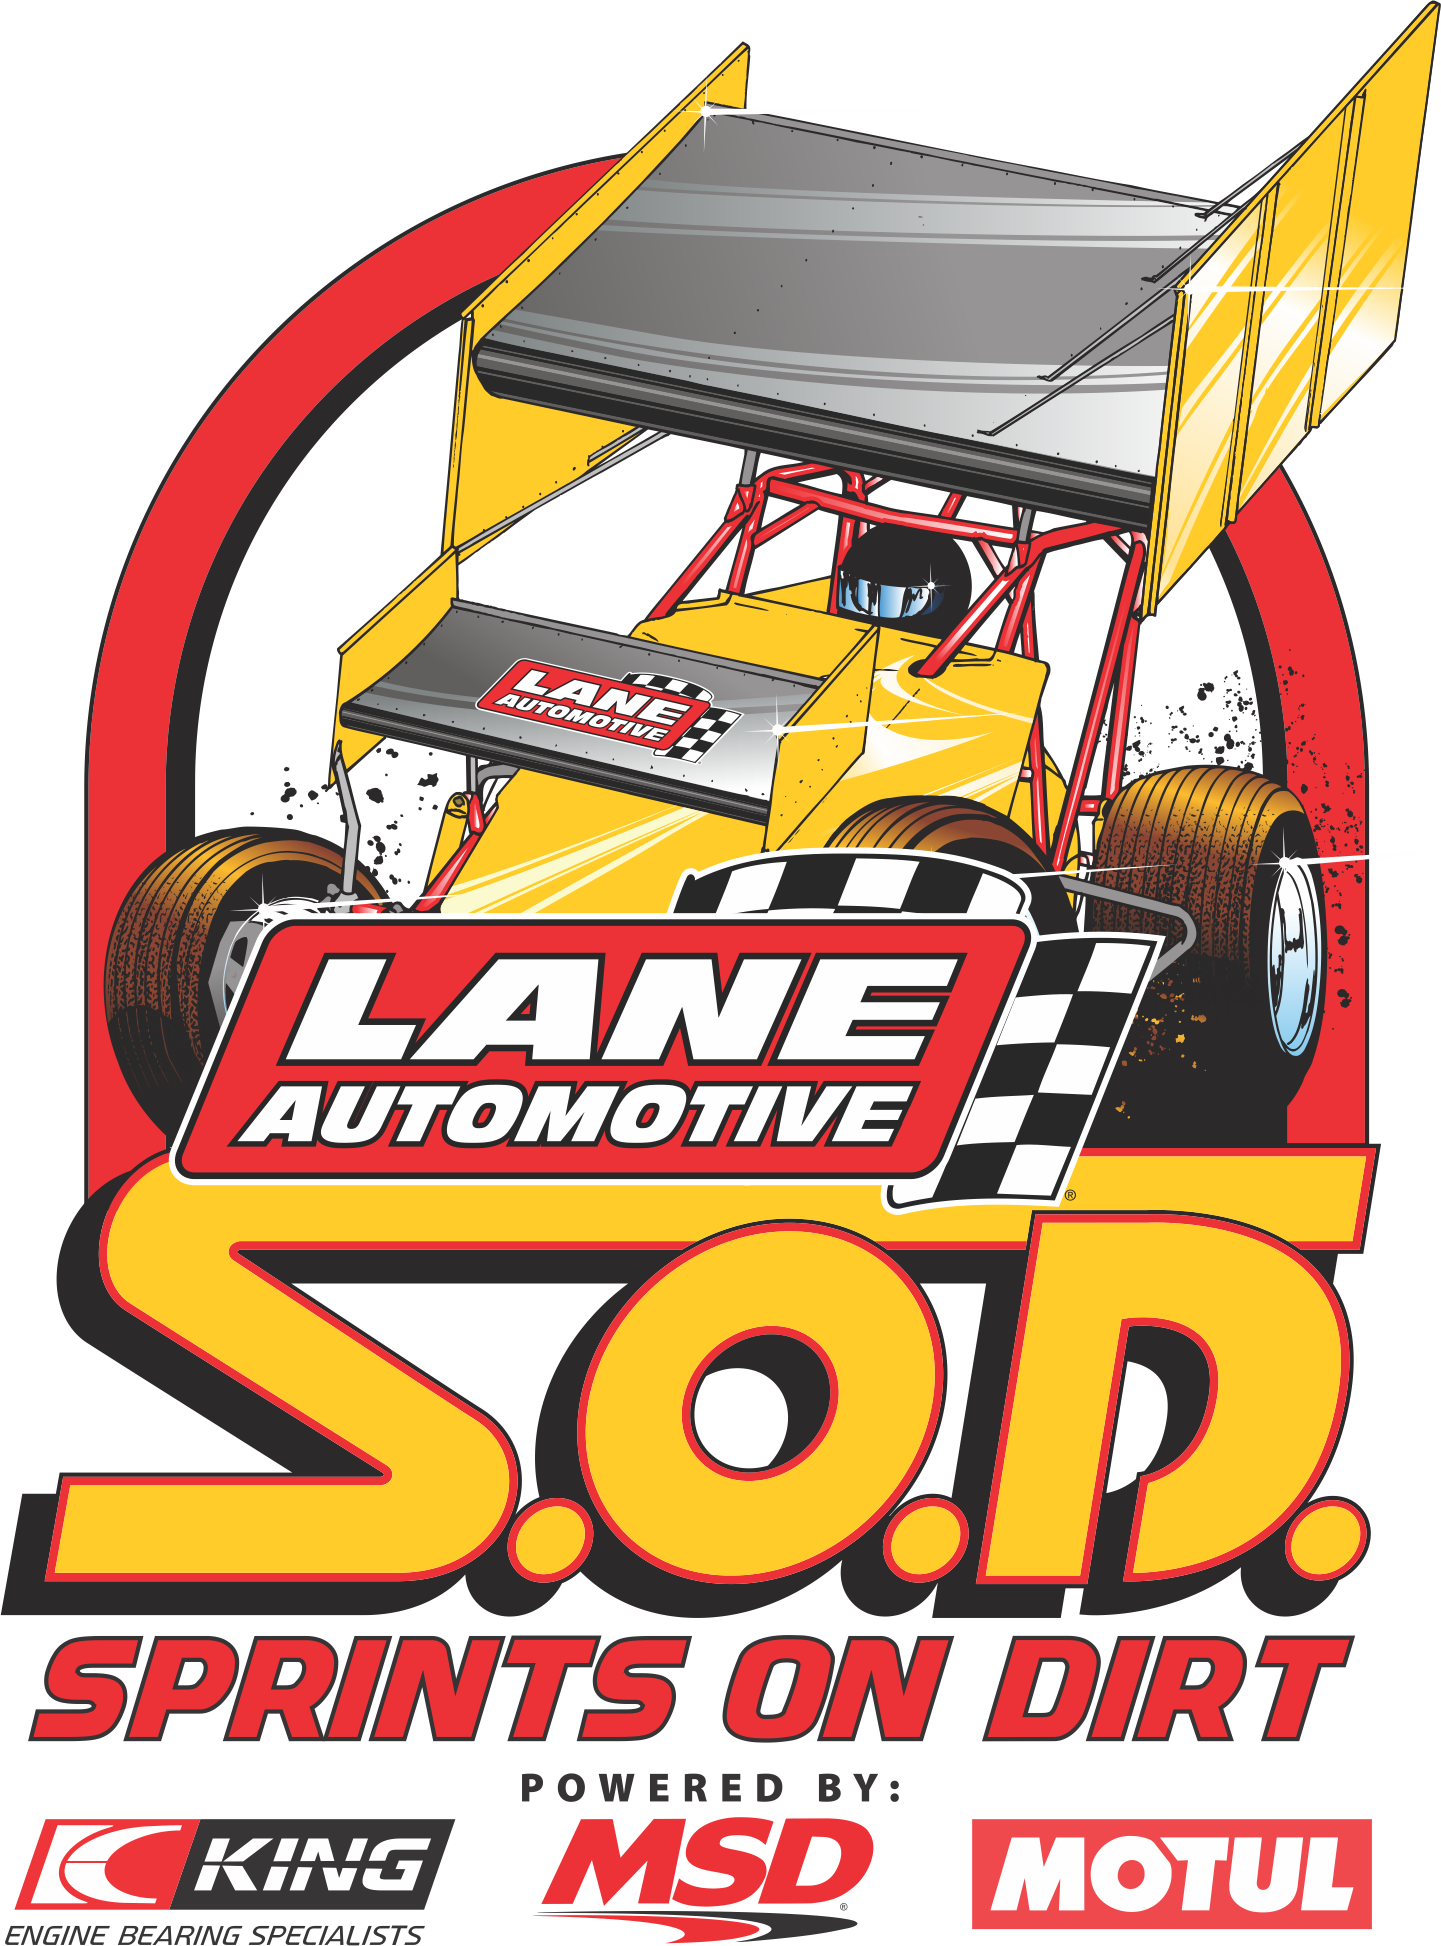 2019 Sprints on Dirt Championship Banquet February 8th, 2020 at Clubhouse Bar & Grill 270 Narrows Rd., Coldwater, MI 49036